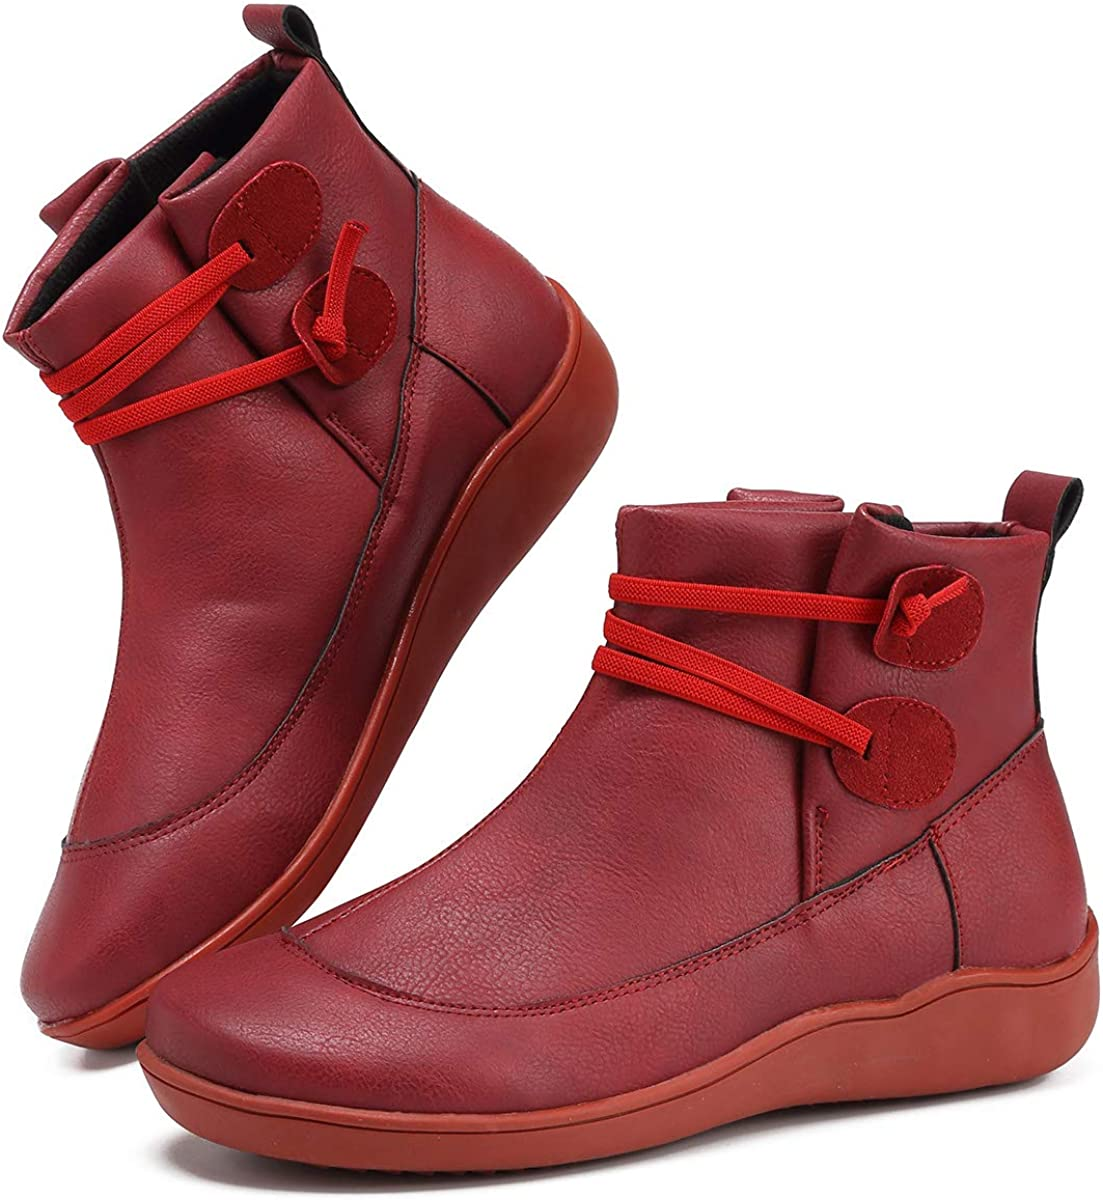 New Arch Support Boots with Side Zipper Leather Comfortable Shoes Booties